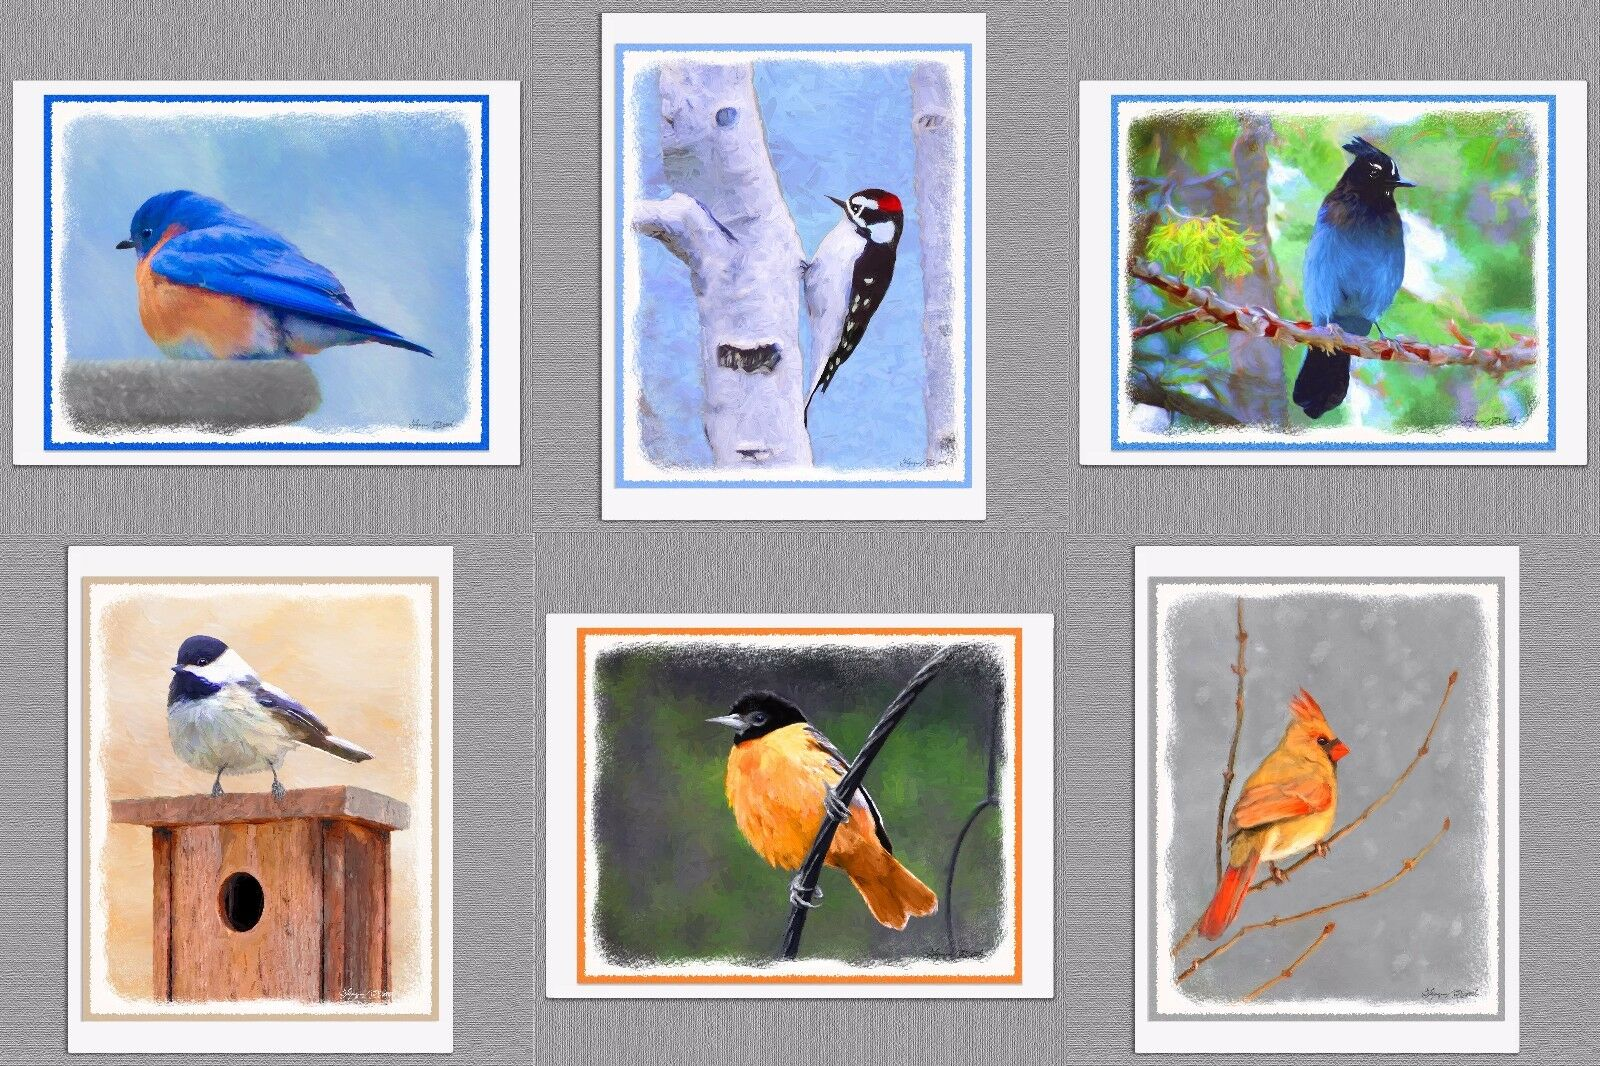 6 assorted wild bird blank note greeting cards bluebird oriole 6 assorted wild bird blank note greeting cards bluebird oriole cardinal junco 6 assorted wild bird blank note greeting cards bluebird oriole cardinal junco m4hsunfo